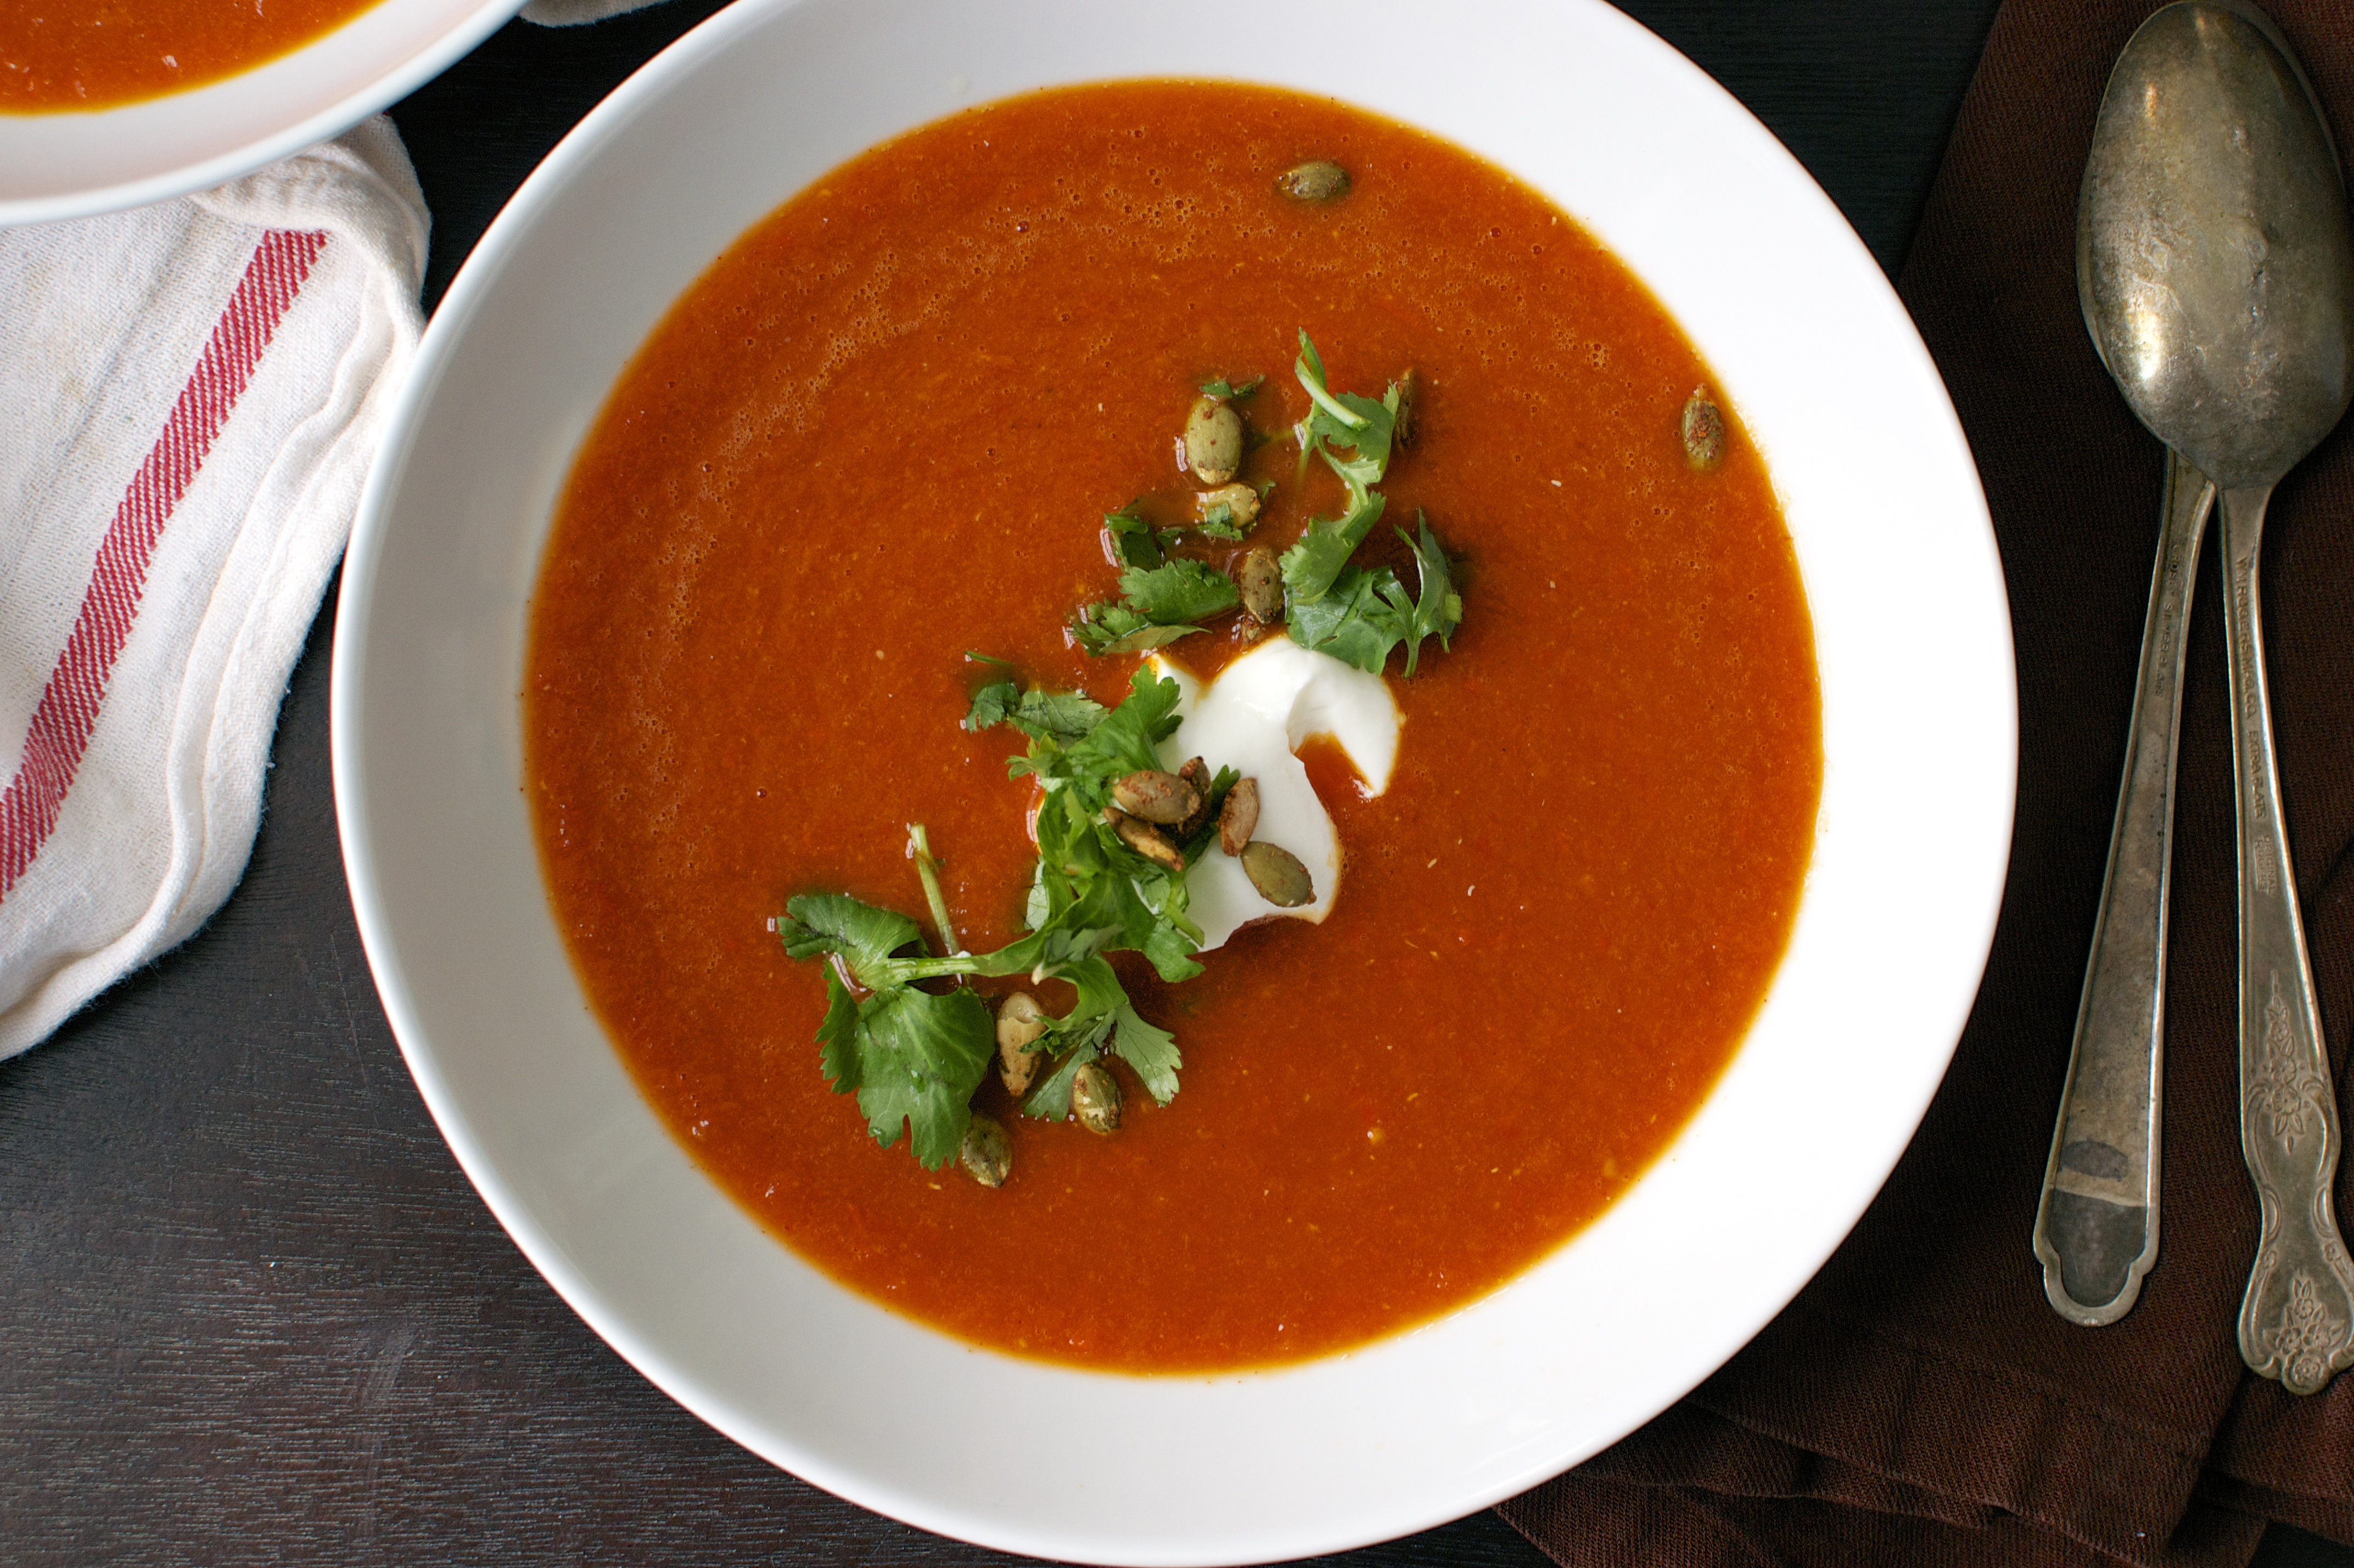 Big eats tiny kitchen page 3 cooking eating and for Roasted pepper tomato soup